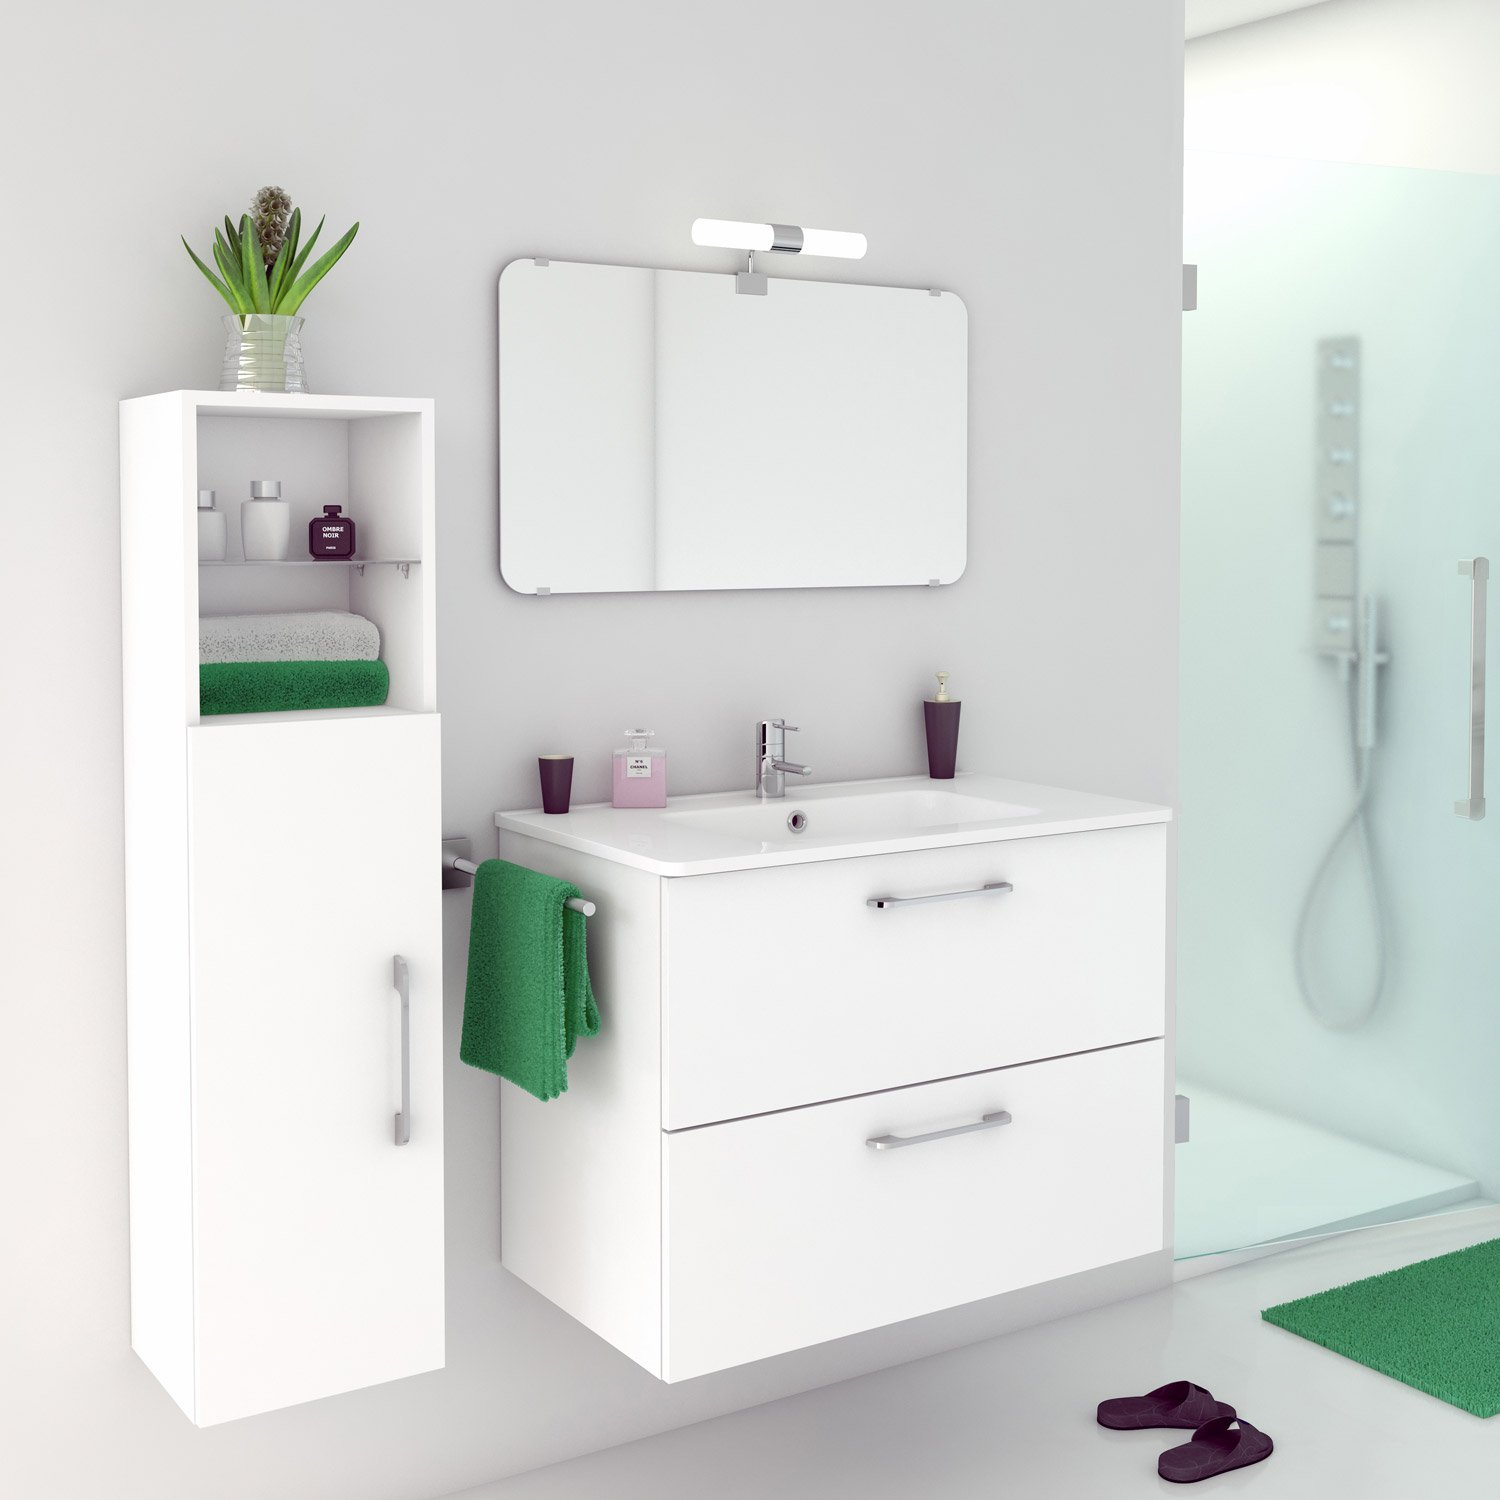 Leroy merlin 3d dressing for Salle de bain sol 3d